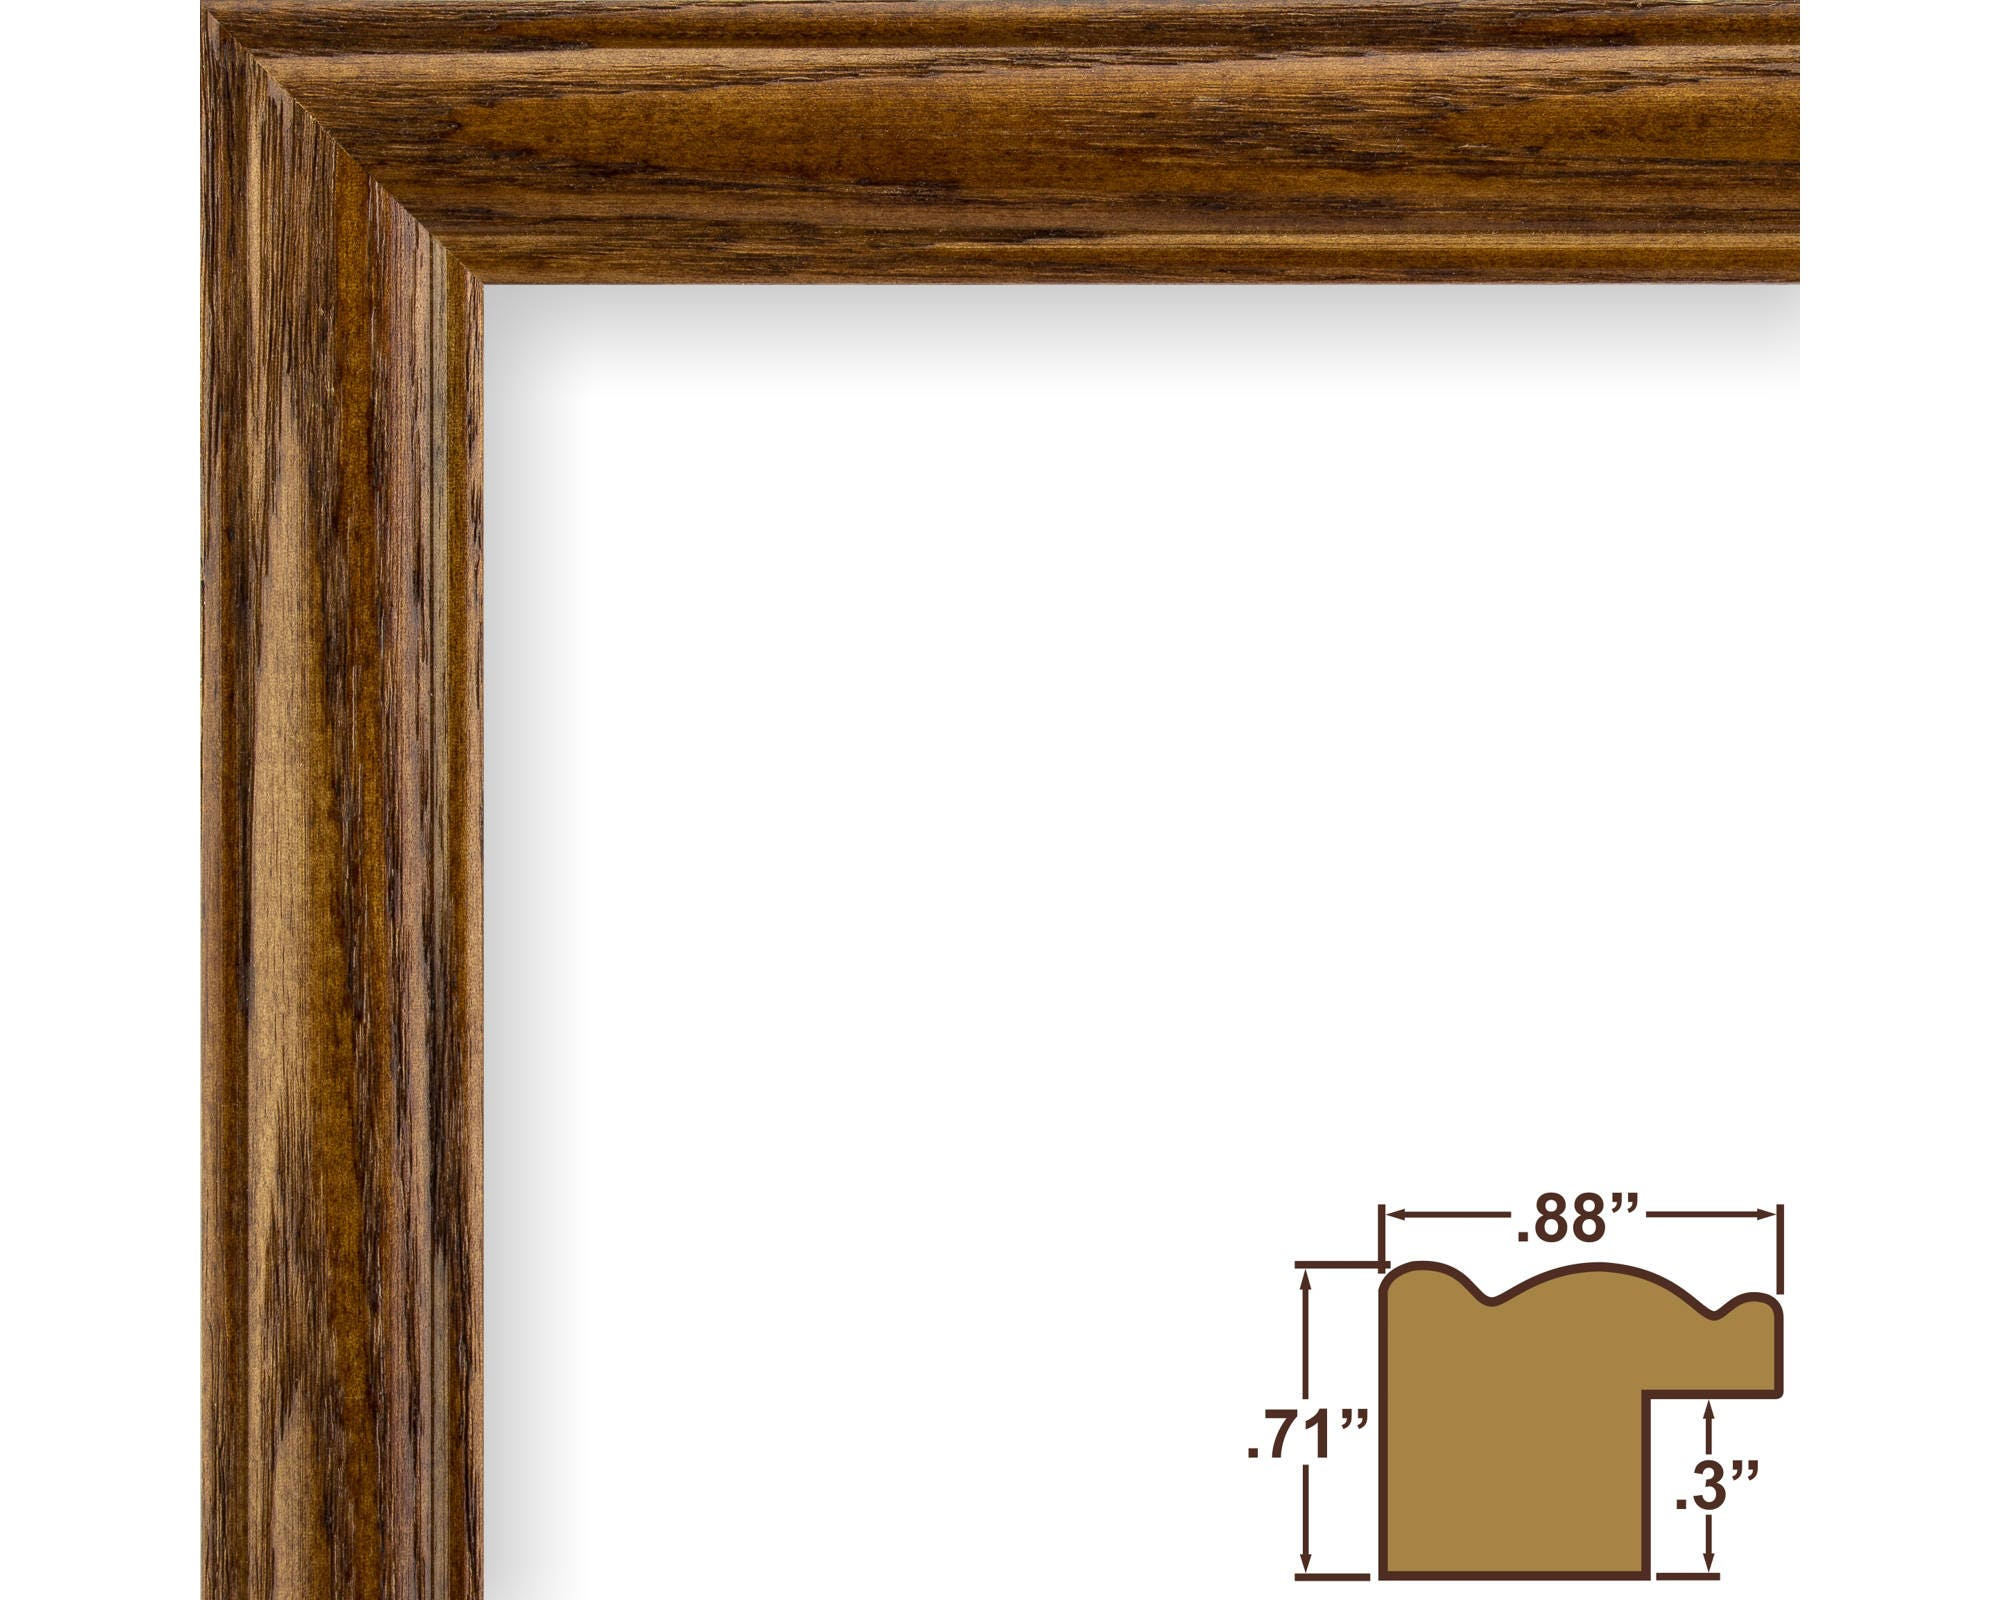 Craig frames 19x25 inch brown ash picture frame wiltshire zoom jeuxipadfo Image collections